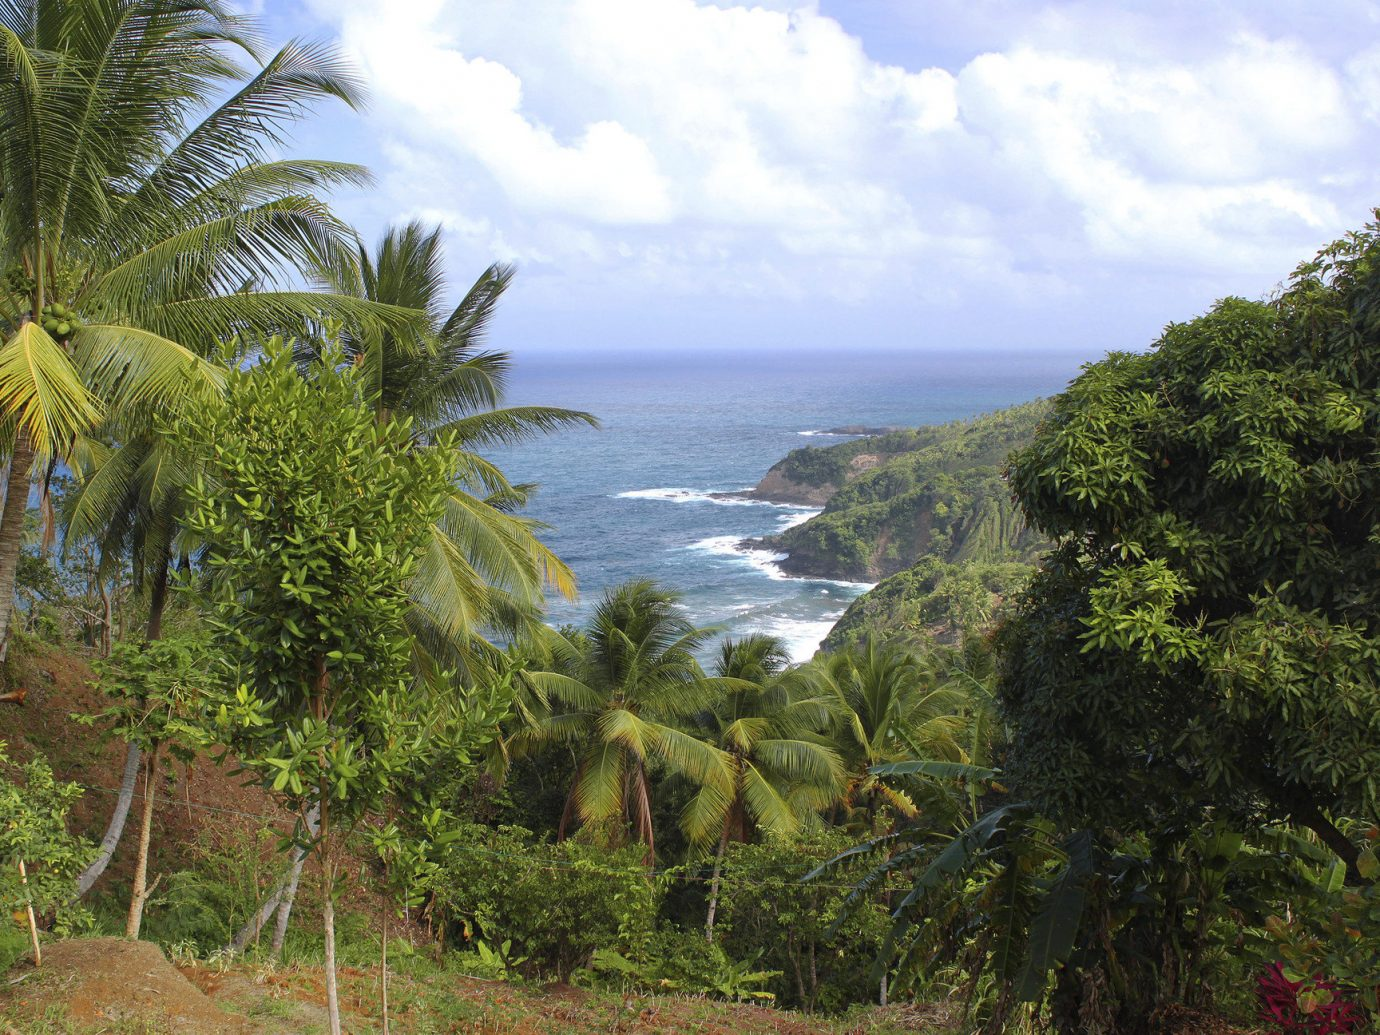 Health + Wellness Trip Ideas tree outdoor sky vegetation geographical feature plant body of water Coast Sea tropics Forest Nature Jungle arecales rainforest Beach cliff bay terrain palm lush